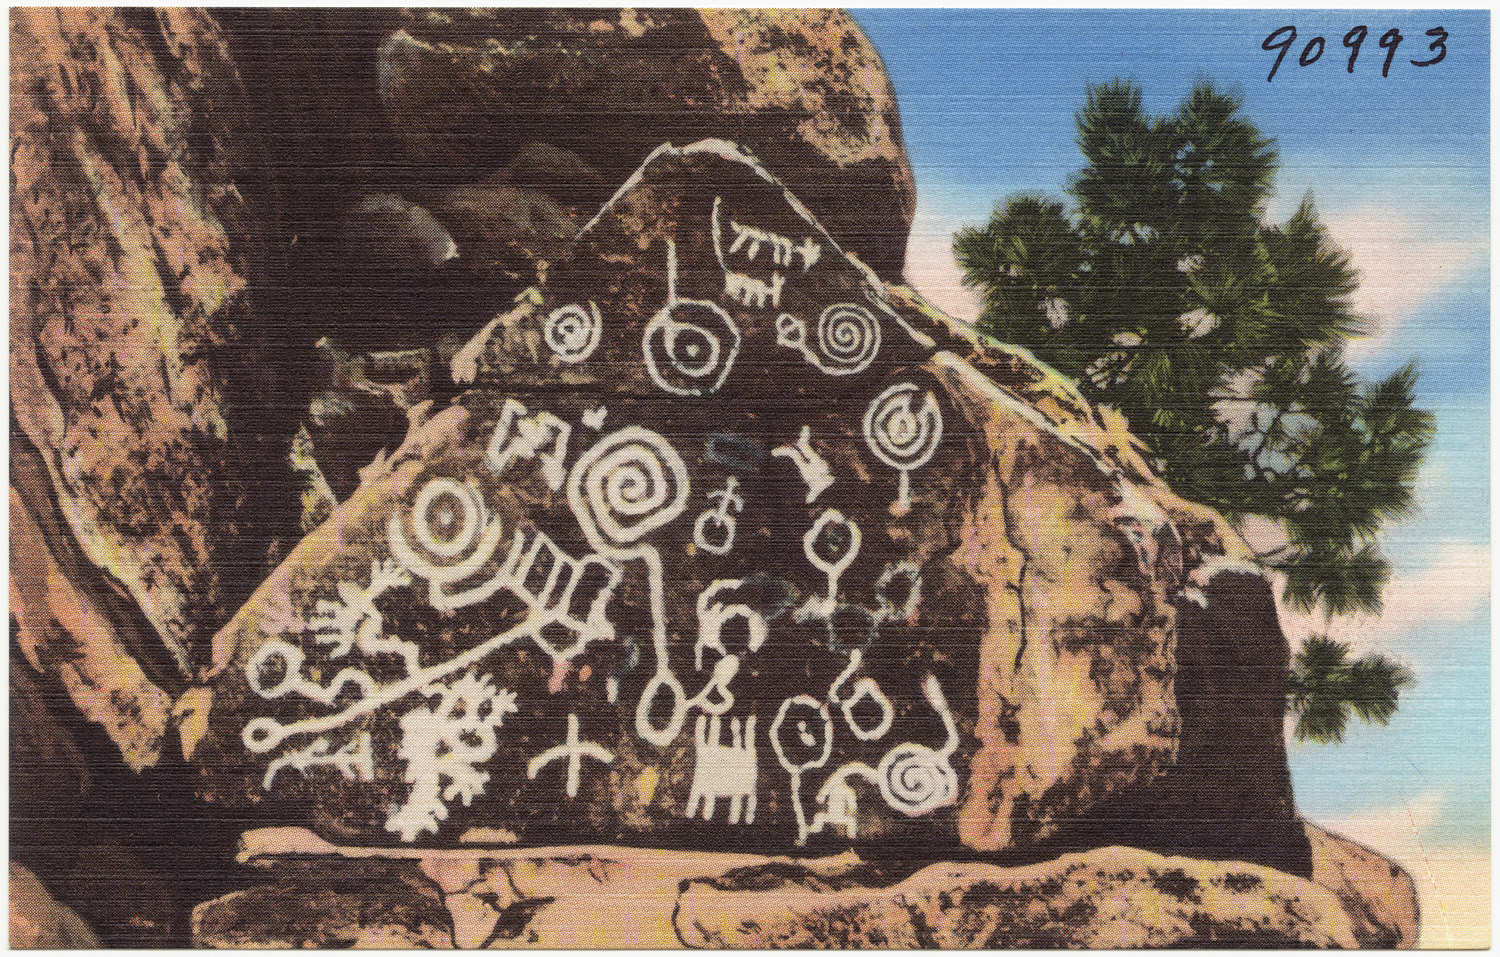 Indian petroglyphs, Manitou Cliff Dwellings, Colorado.